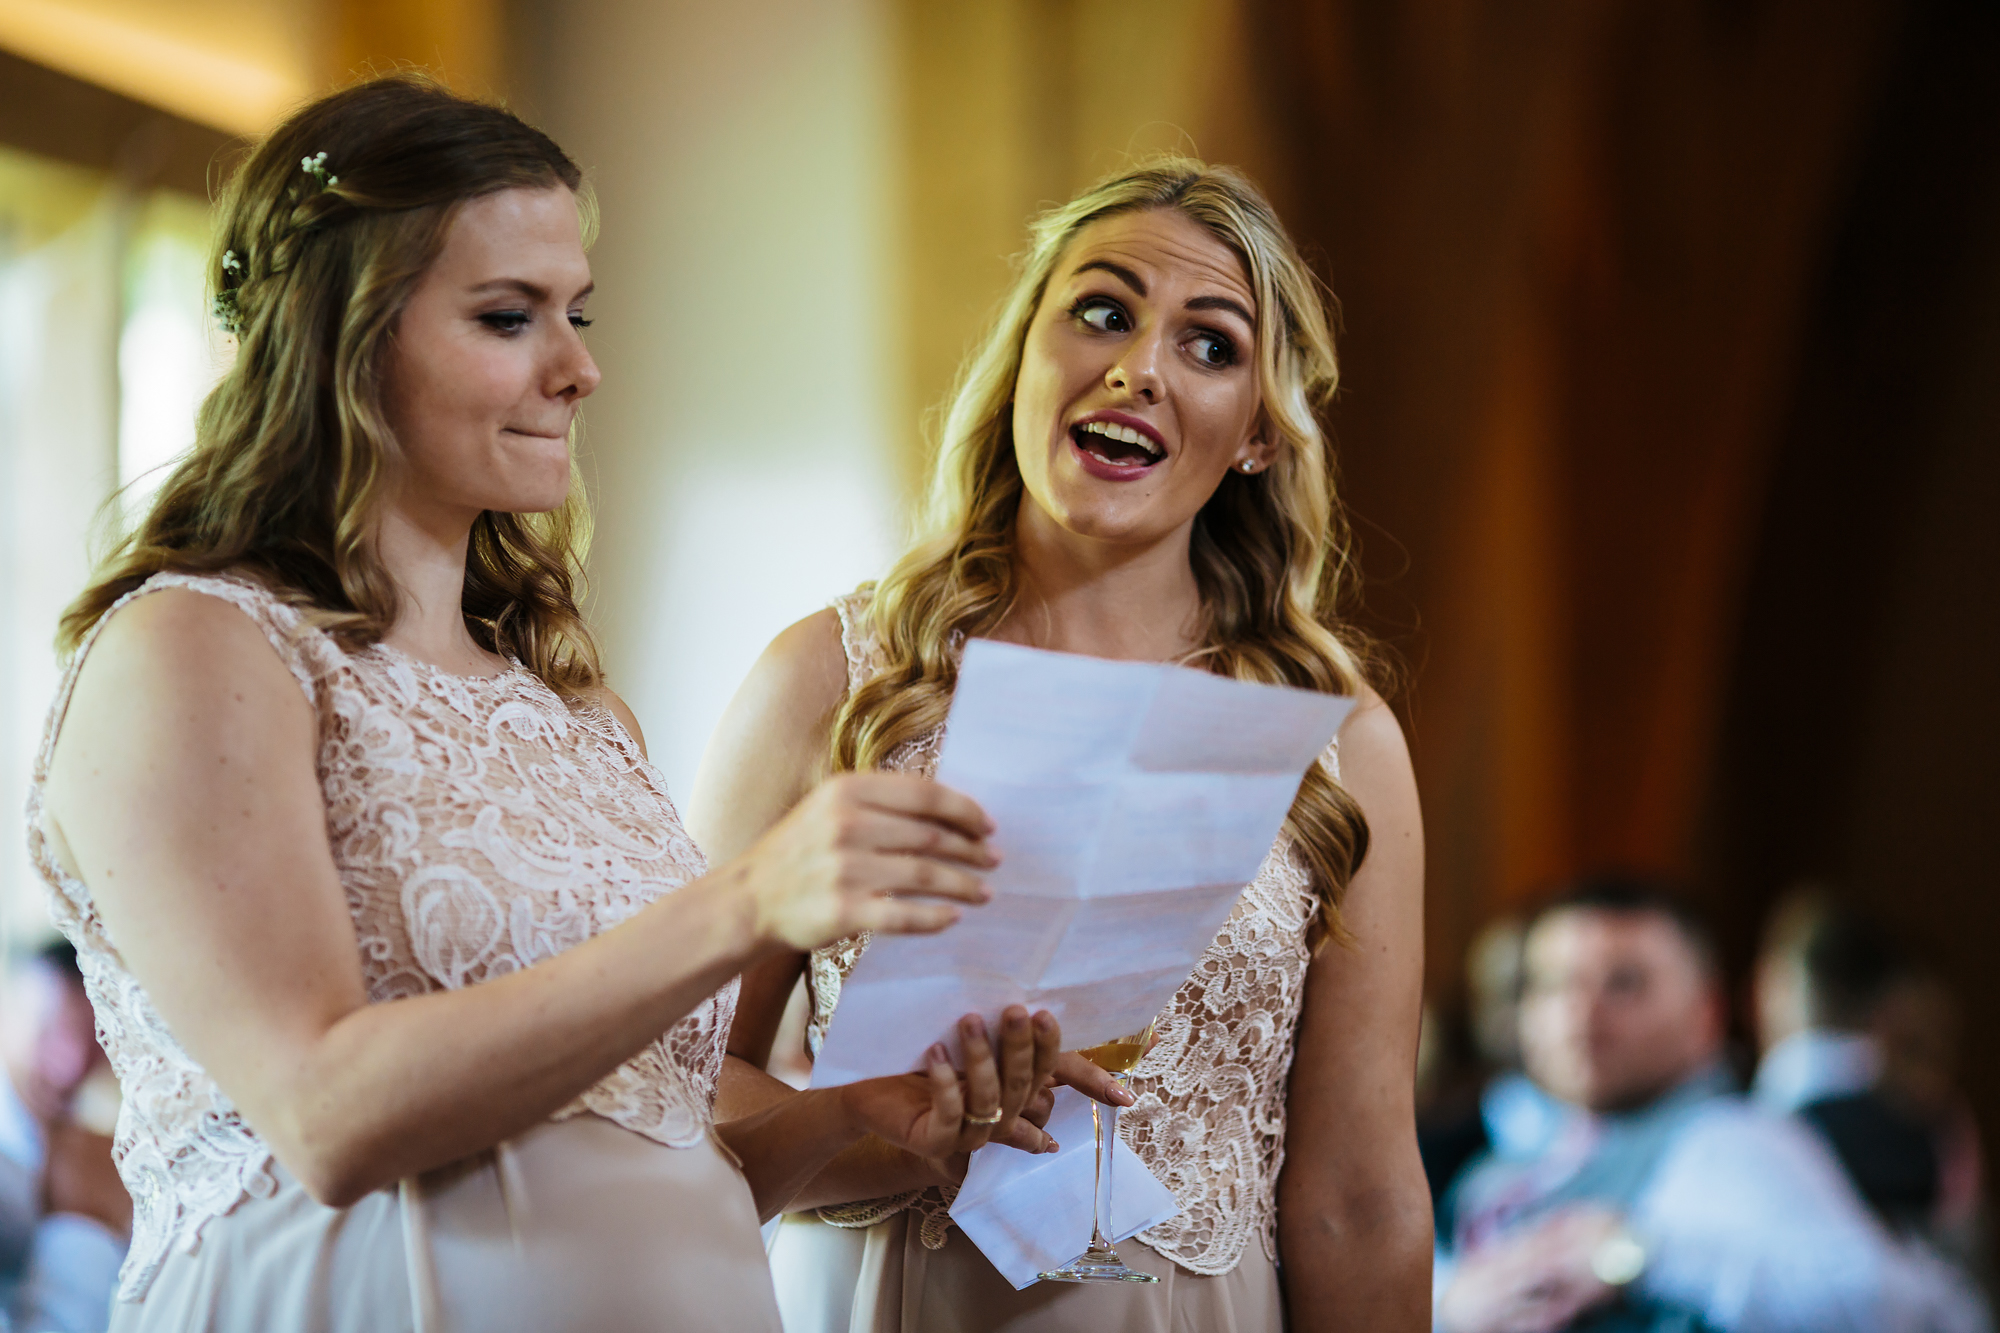 Singing bridesmaids at a wedding emotional